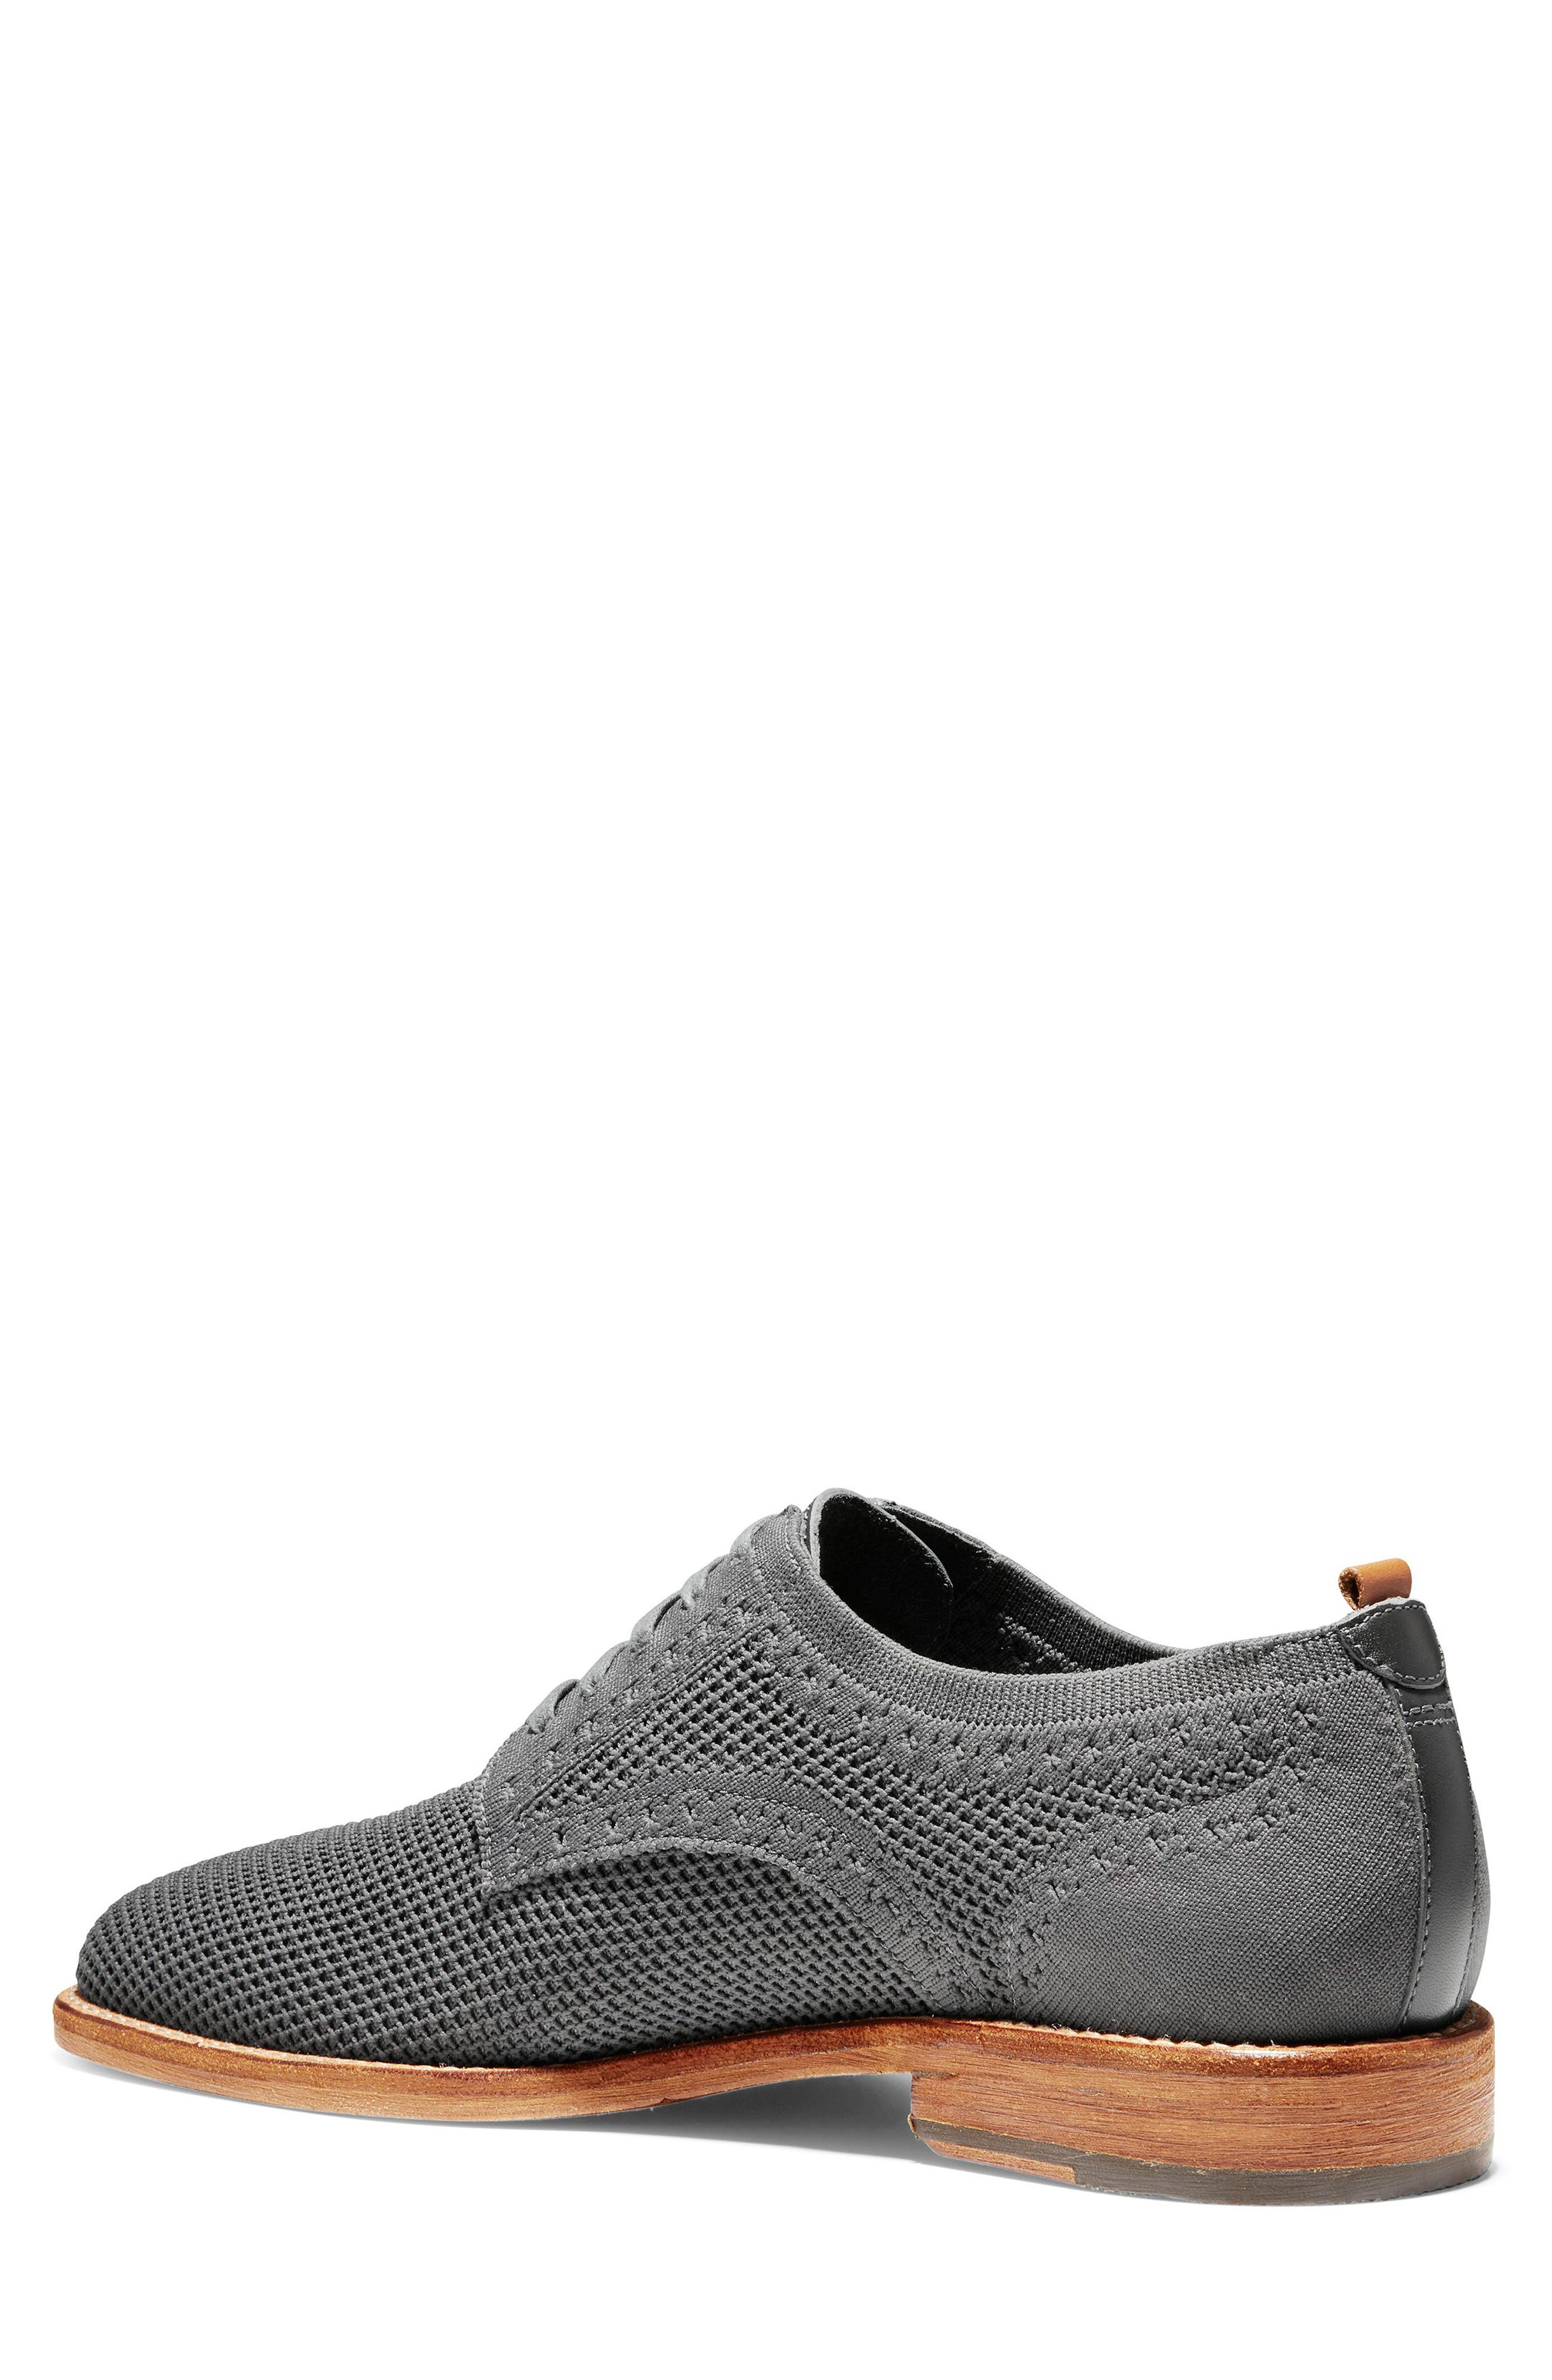 COLE HAAN, Feathercraft Grand Stitchlite Plain Toe Derby, Alternate thumbnail 2, color, MAGNET KNIT